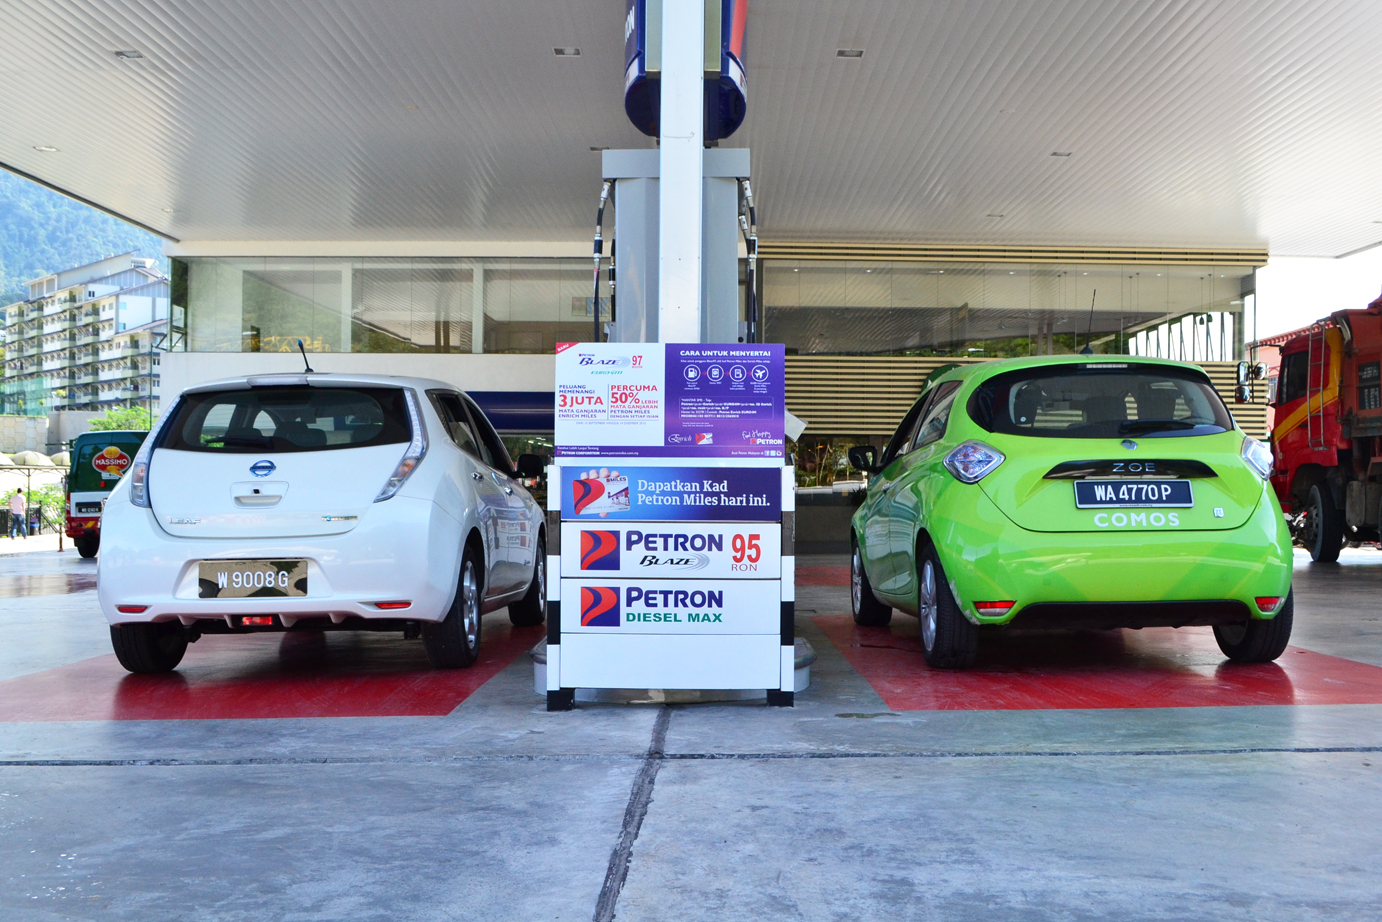 Nissan Leaf Vs Renault Zoe Tricky 12v Battery Charger Circuit D Mohankumar Chargers Out Of Charge Means Luck Even If You Find A Gas Station Unless Youre Going Downhill All The Way